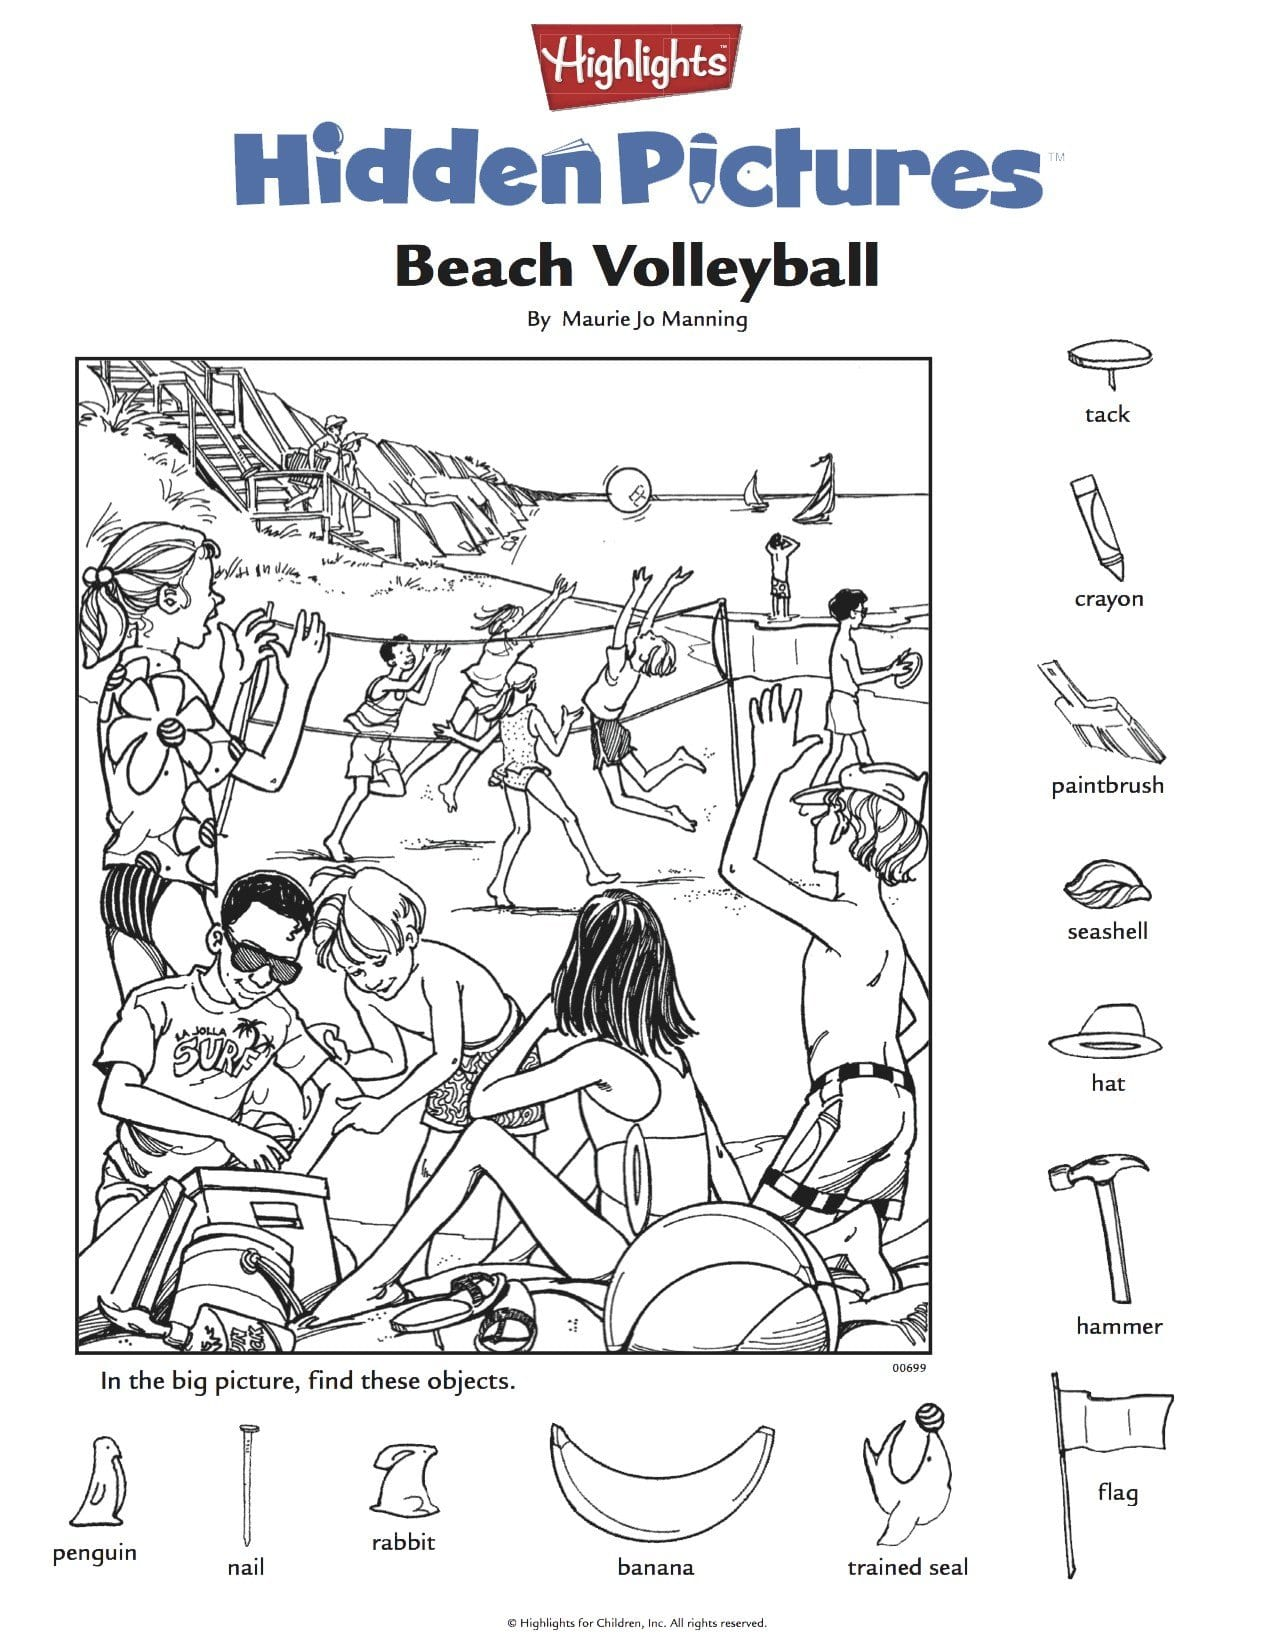 Highlights Hidden Pictures Printable – Printall Throughout Highlights Hidden Pictures Printable Worksheets